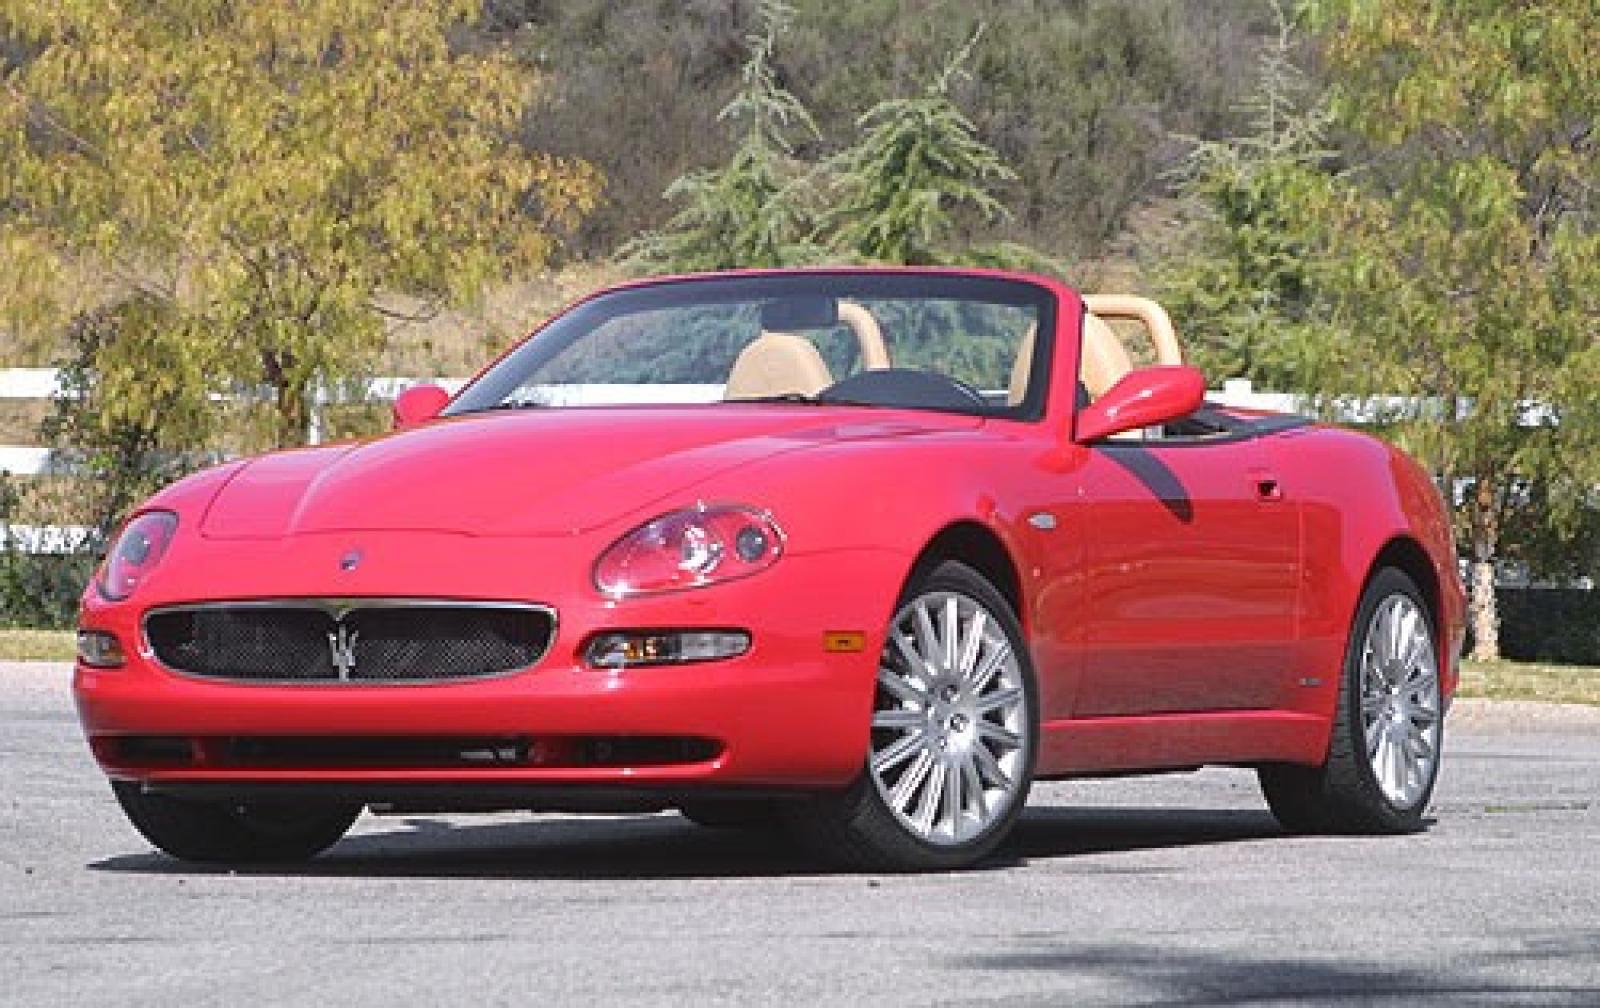 2005 maserati spyder information and photos zombiedrive. Black Bedroom Furniture Sets. Home Design Ideas